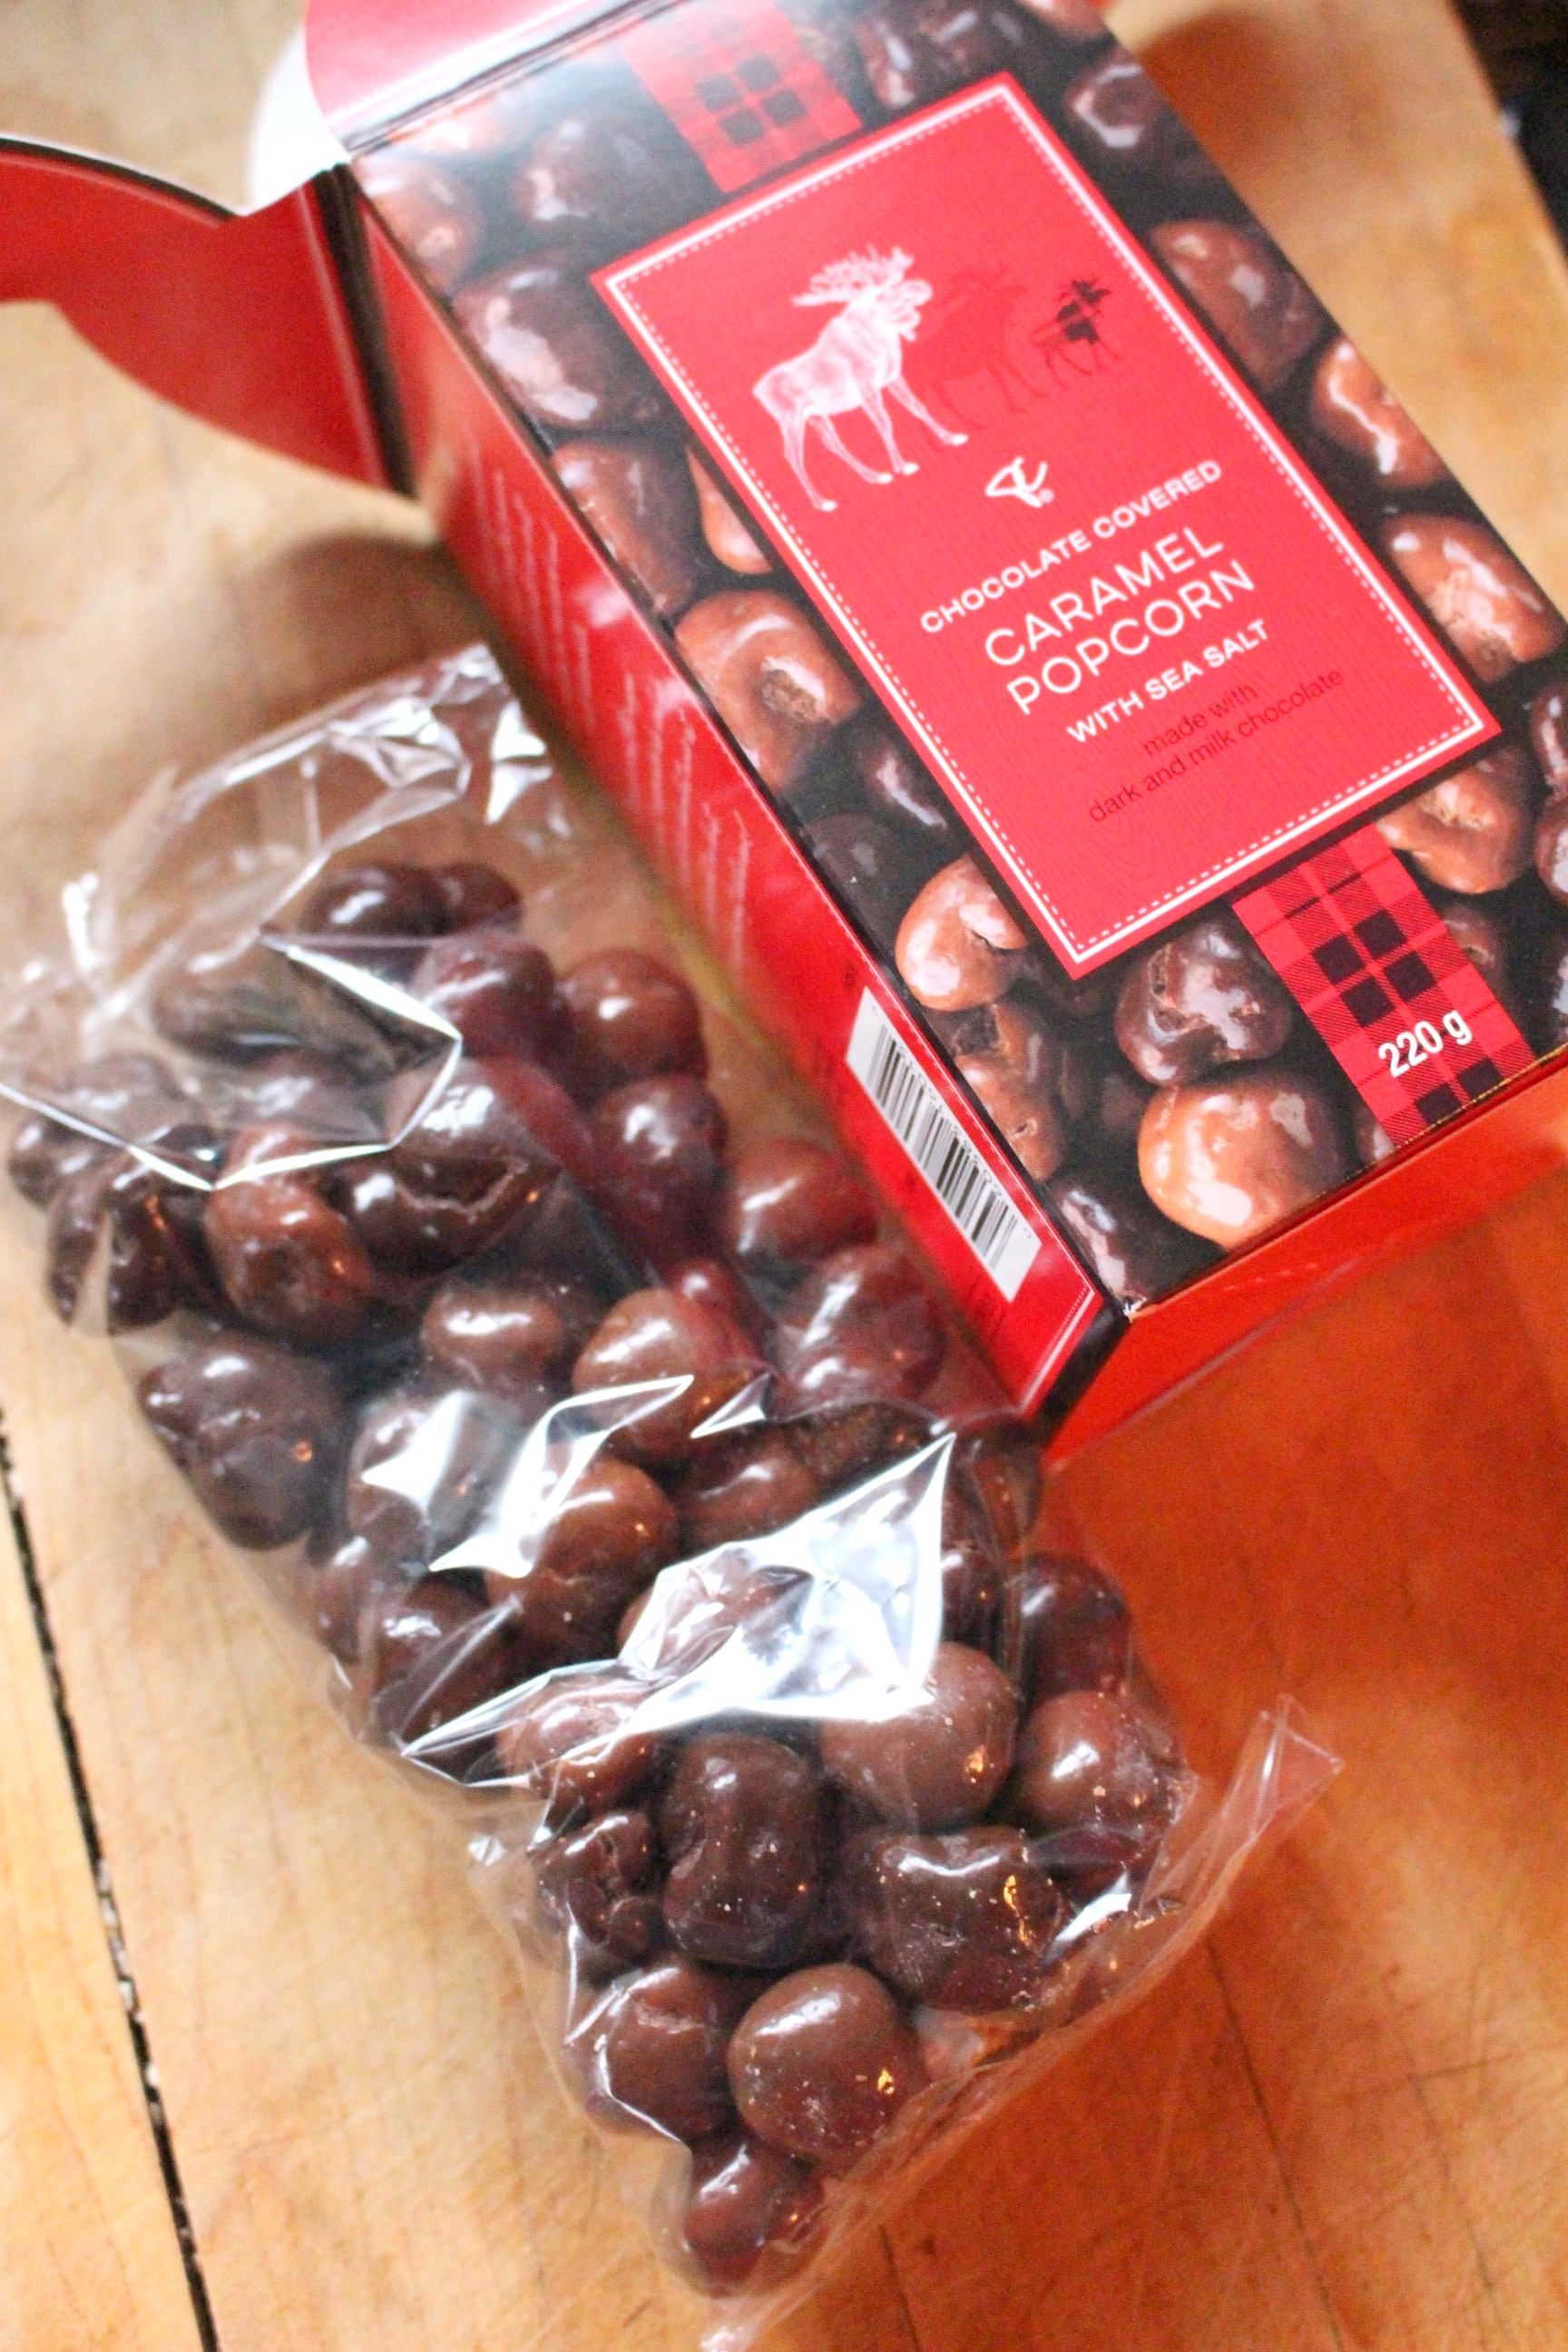 Pc Chocolate Covered Caramel Popcorn With Sea Salt Product Review